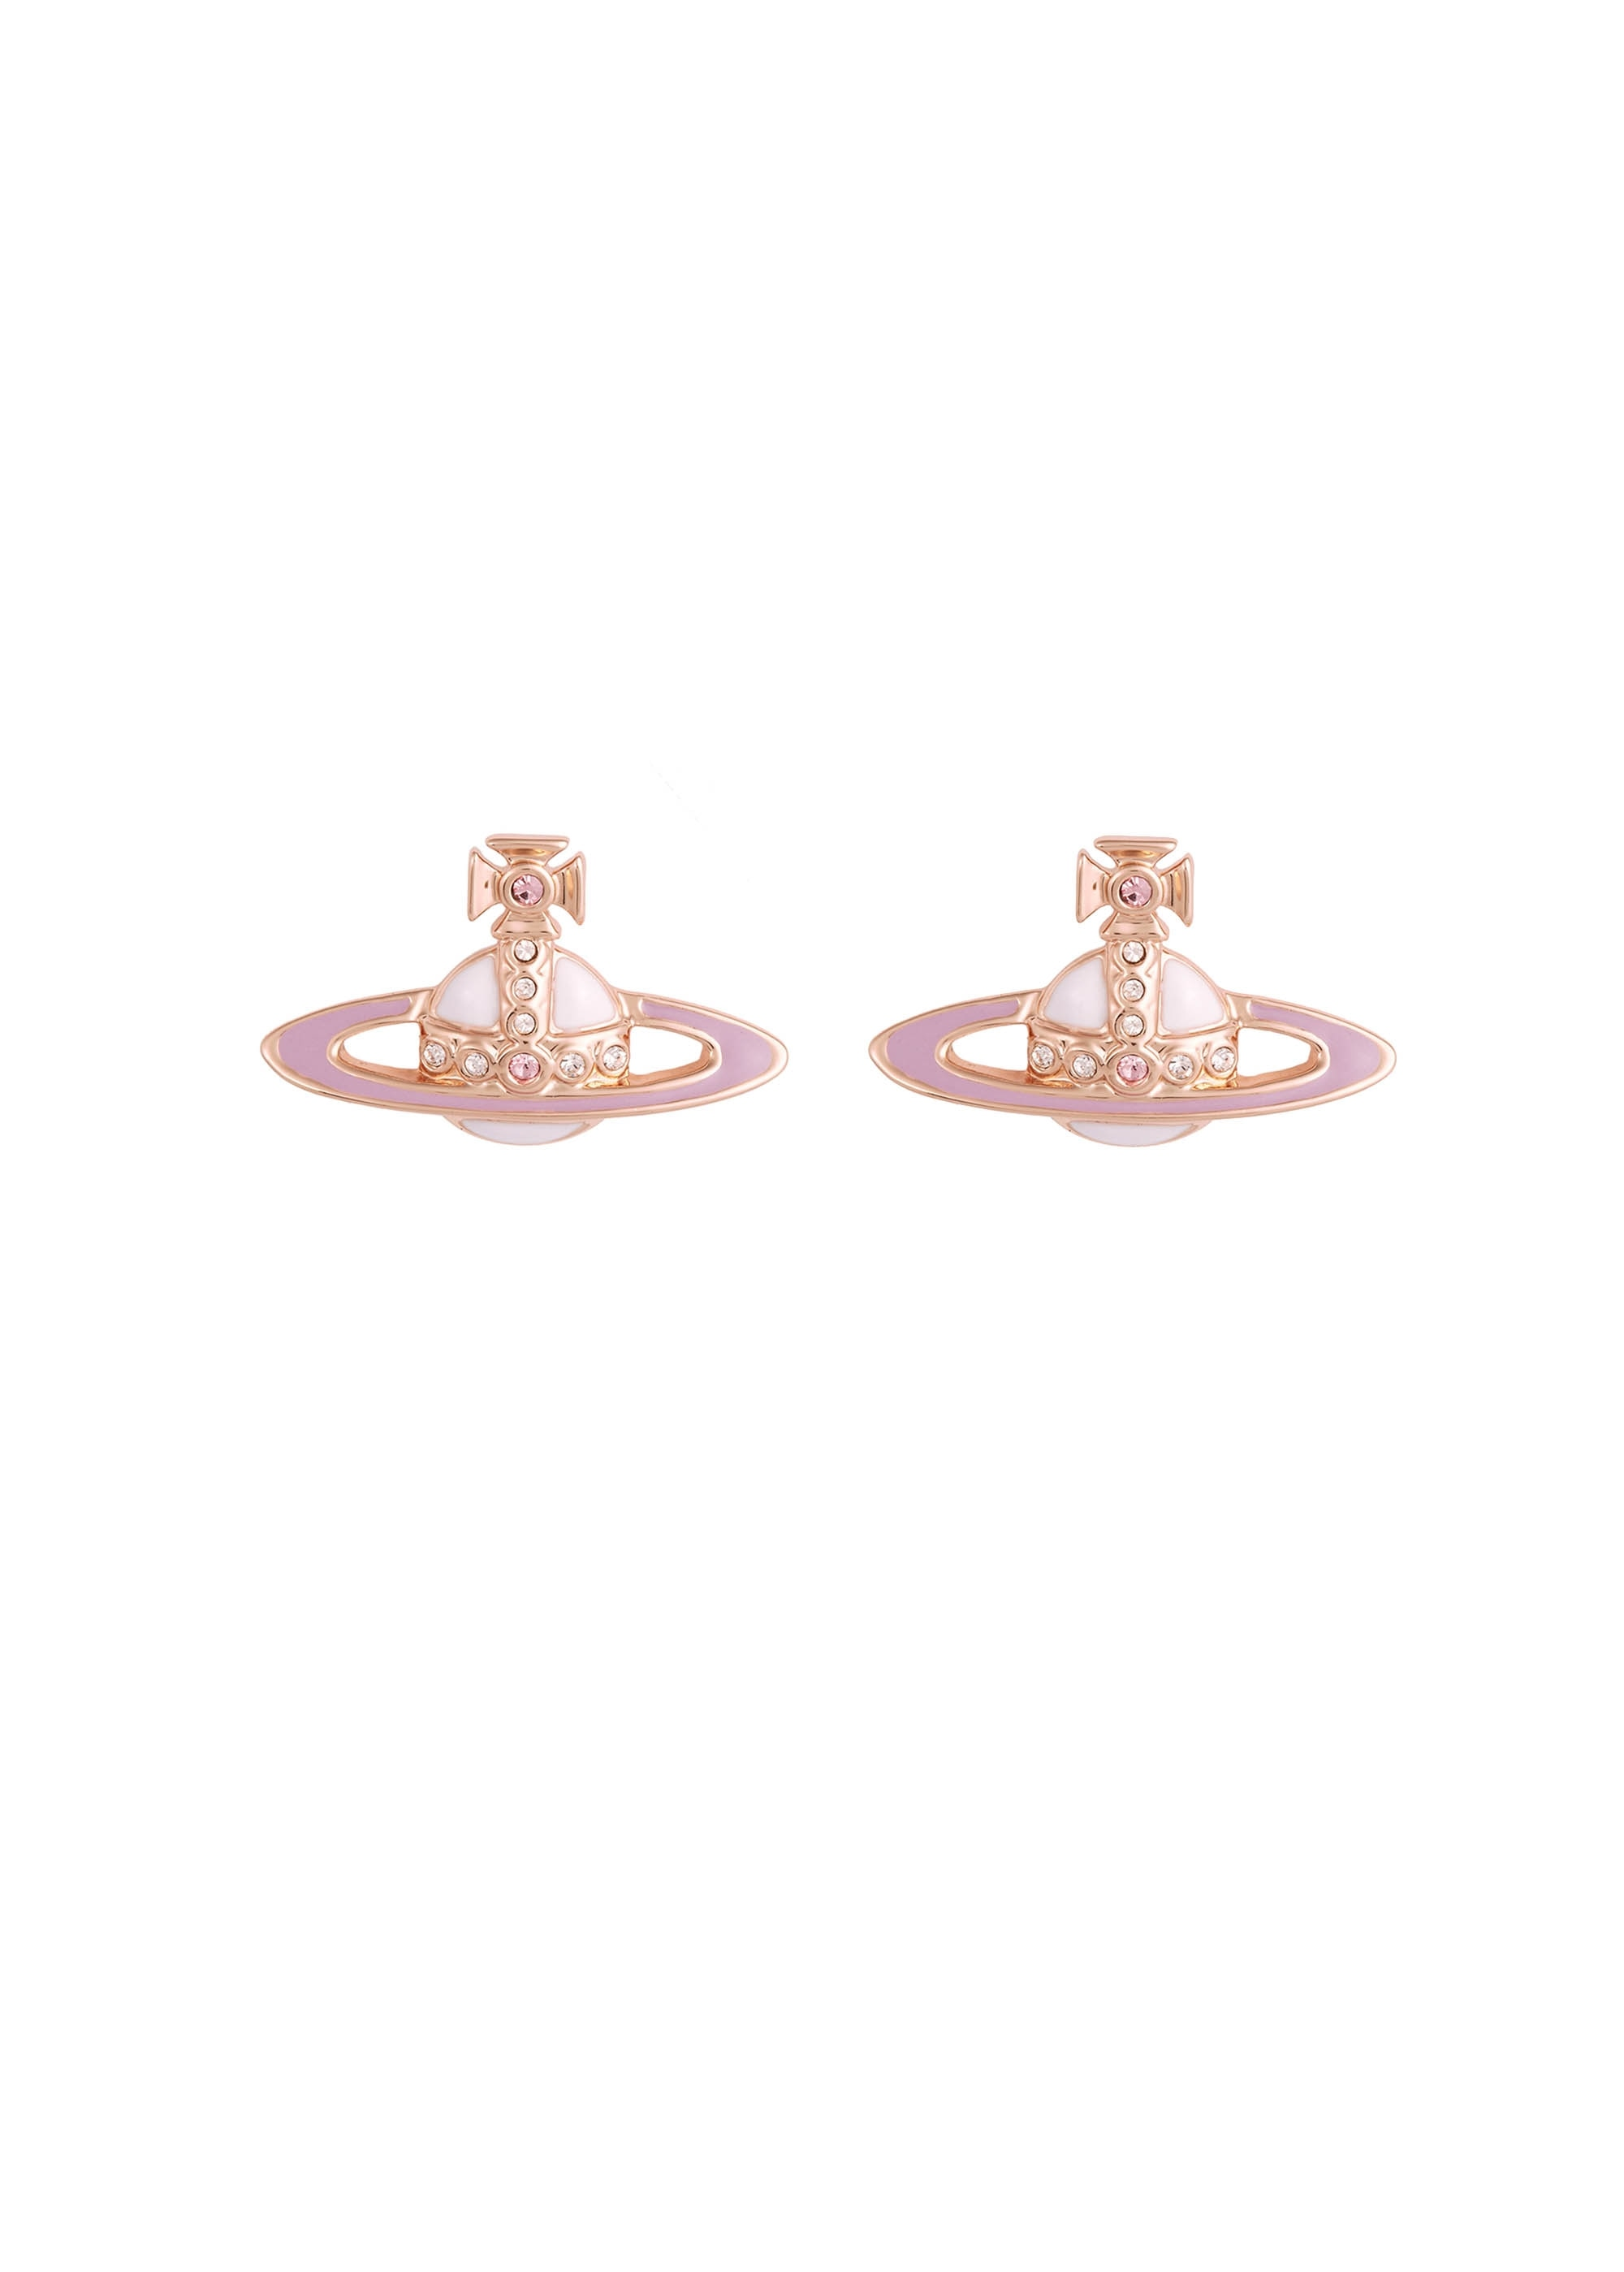 707aed9b6dd Vivienne Westwood Accessories Small Neo Bas Relief Earrings - Pink ...